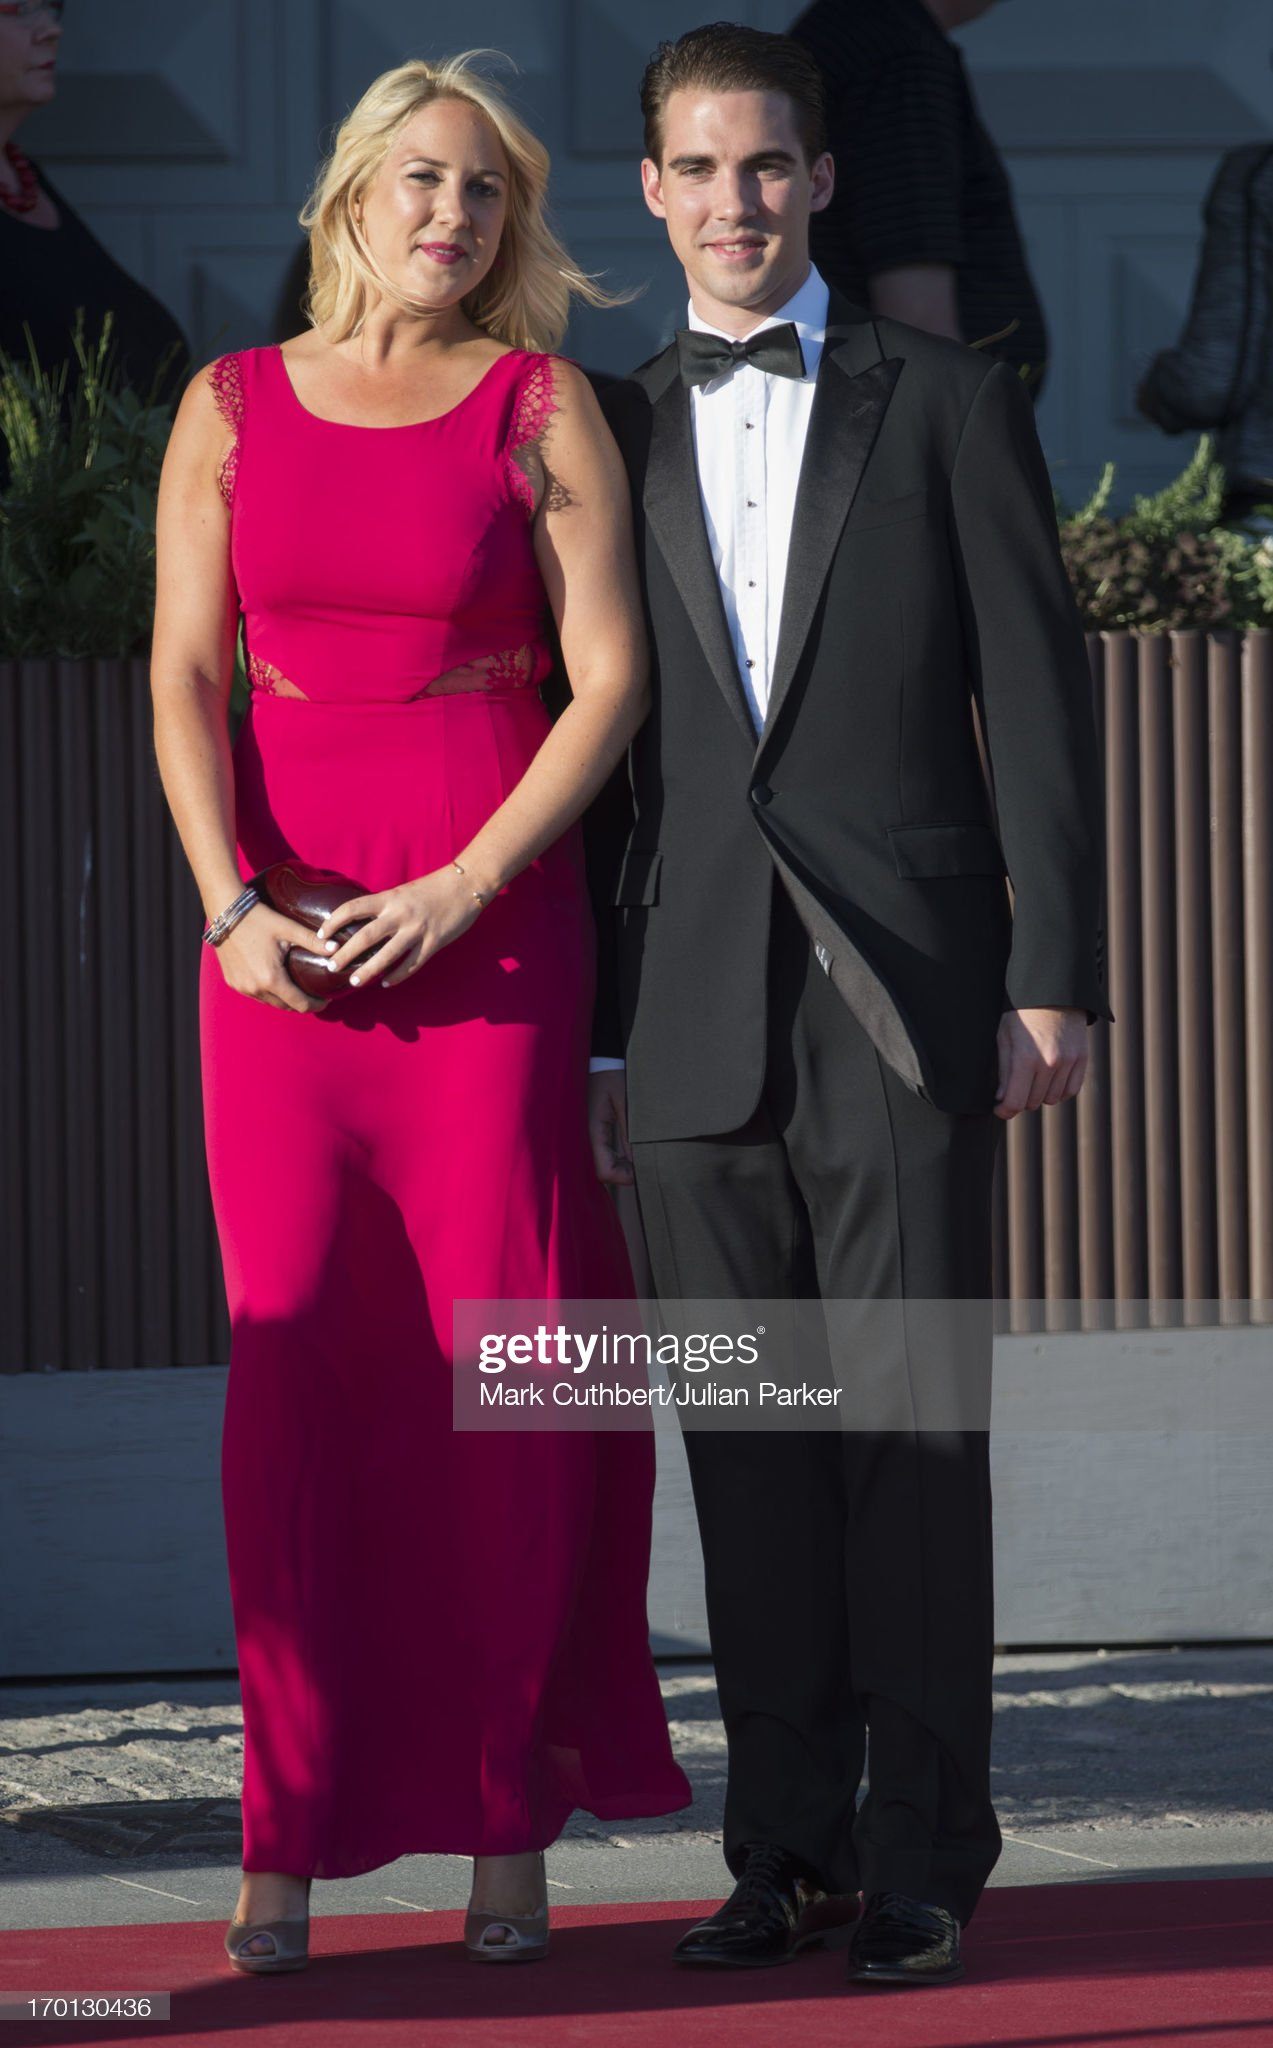 King Carl XVI Gustaf & Queen Silvia Of Sweden Host A Private Dinner Ahead Of The Wedding Of Princess Madeleine & Christopher O'Neill - Arrivals : News Photo